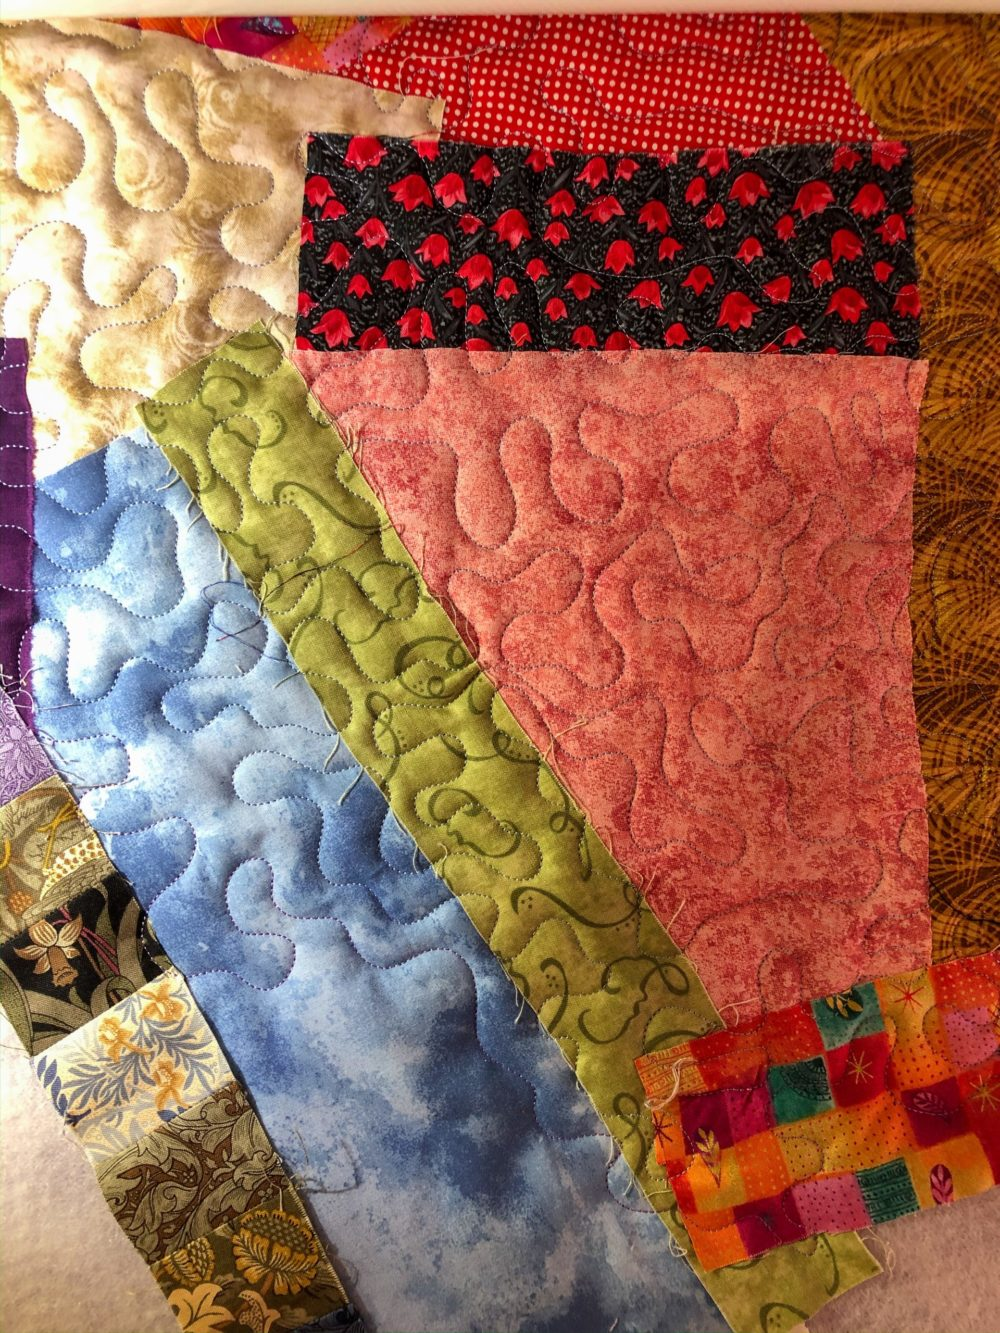 Fabric quilted all over, keeping raw edges